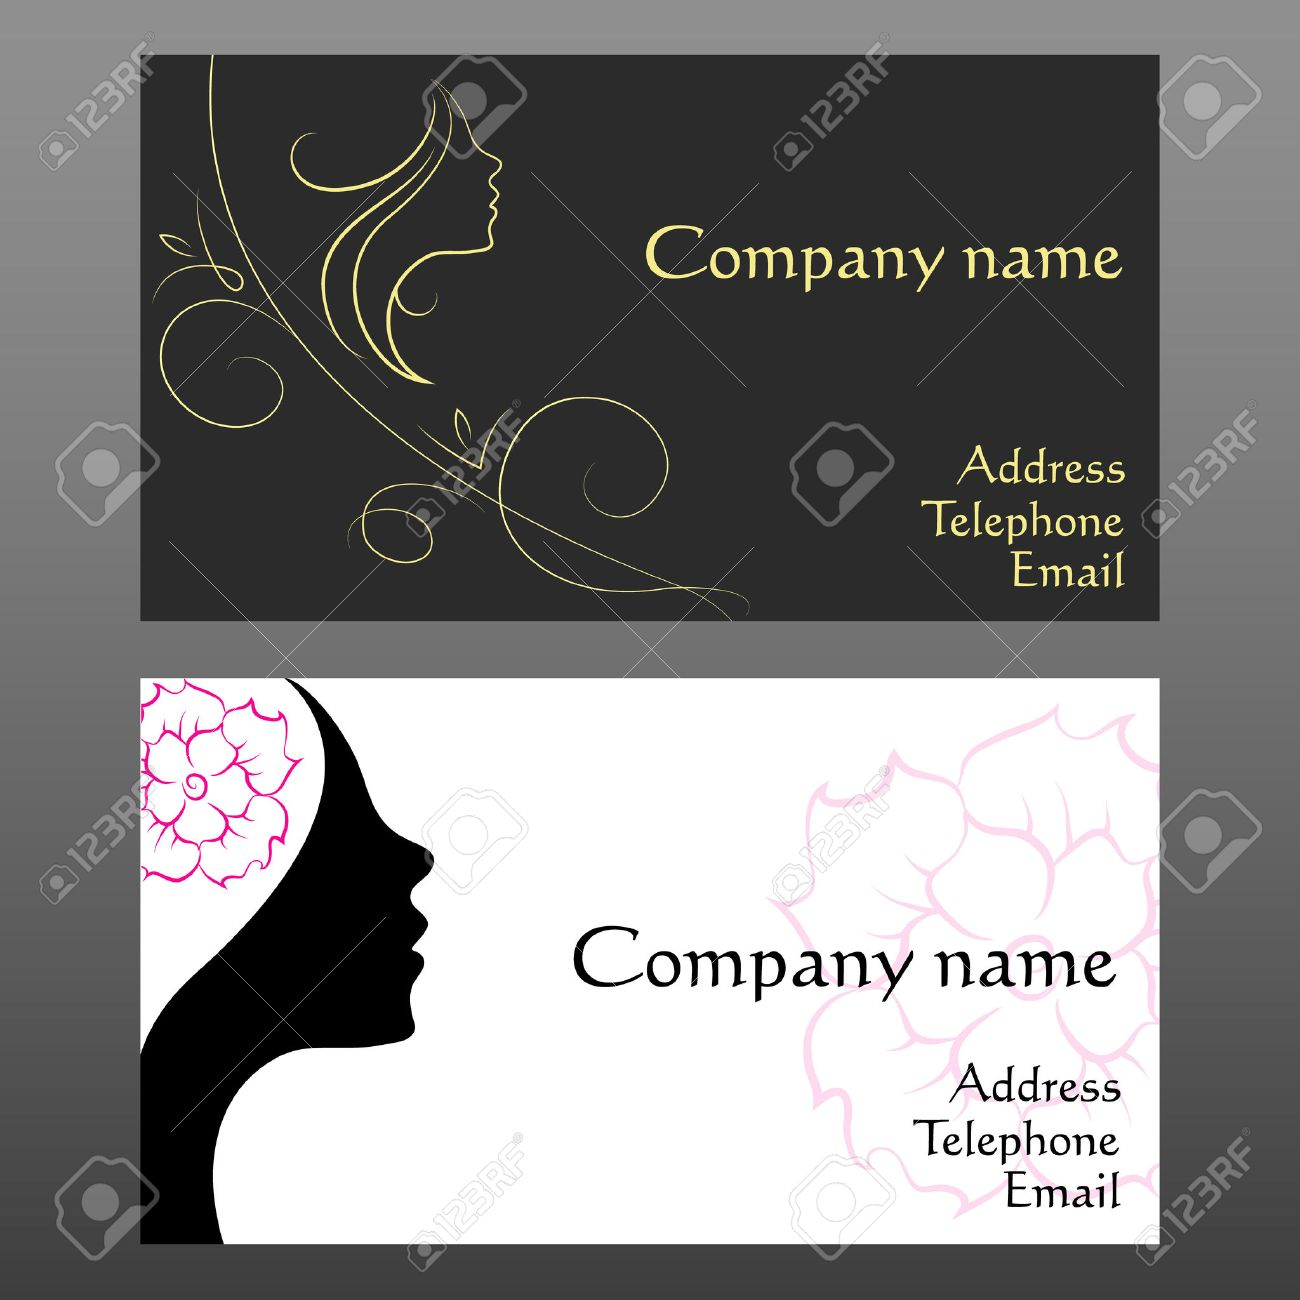 Business card for hair and beauty salon royalty free cliparts business card for hair and beauty salon stock vector 24183477 reheart Images